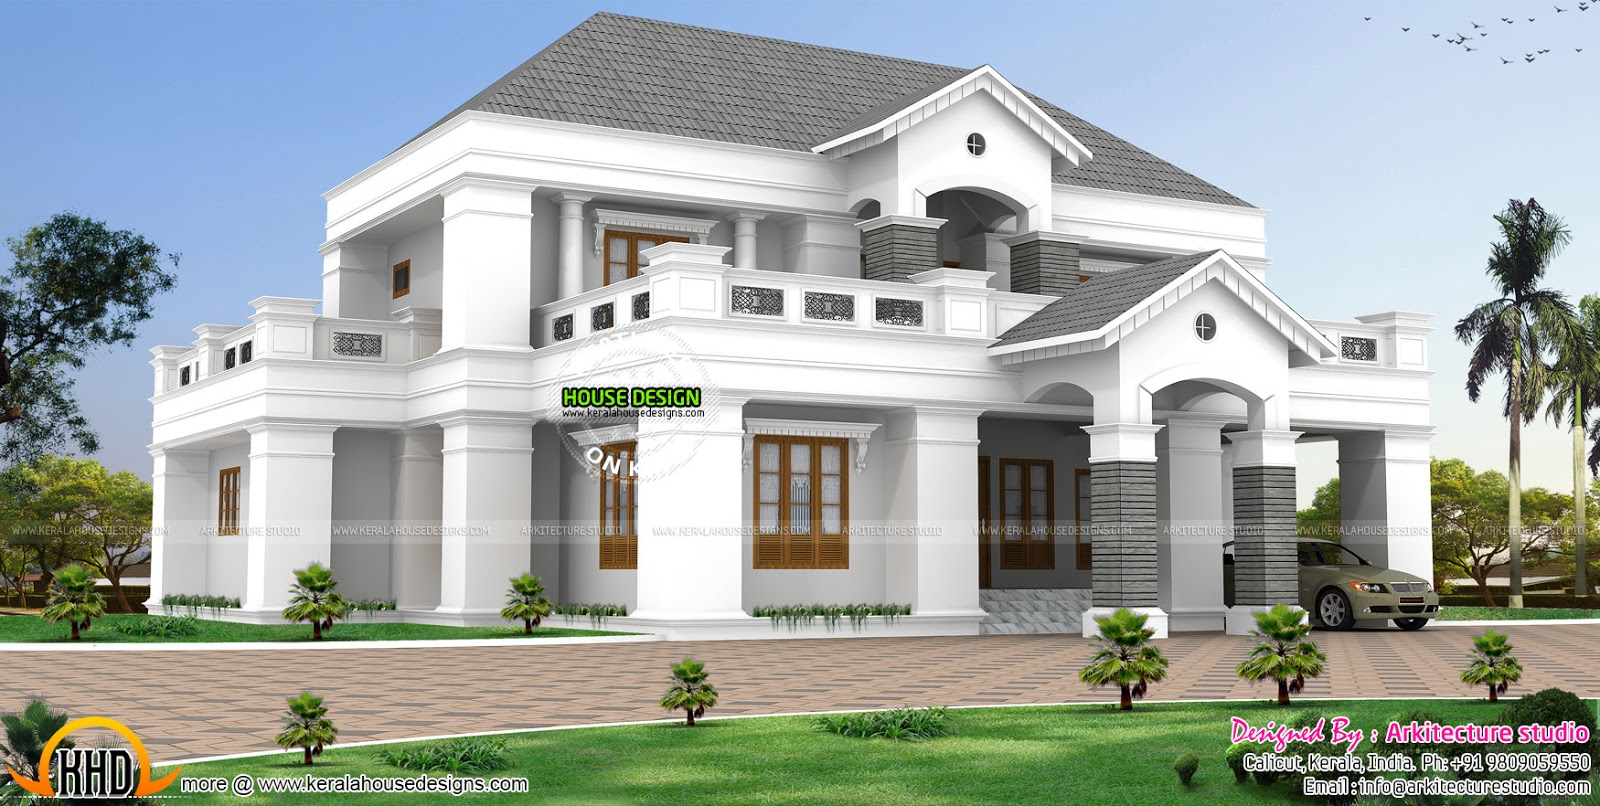 Luxurious pillar type home design kerala home design and for Designers homes